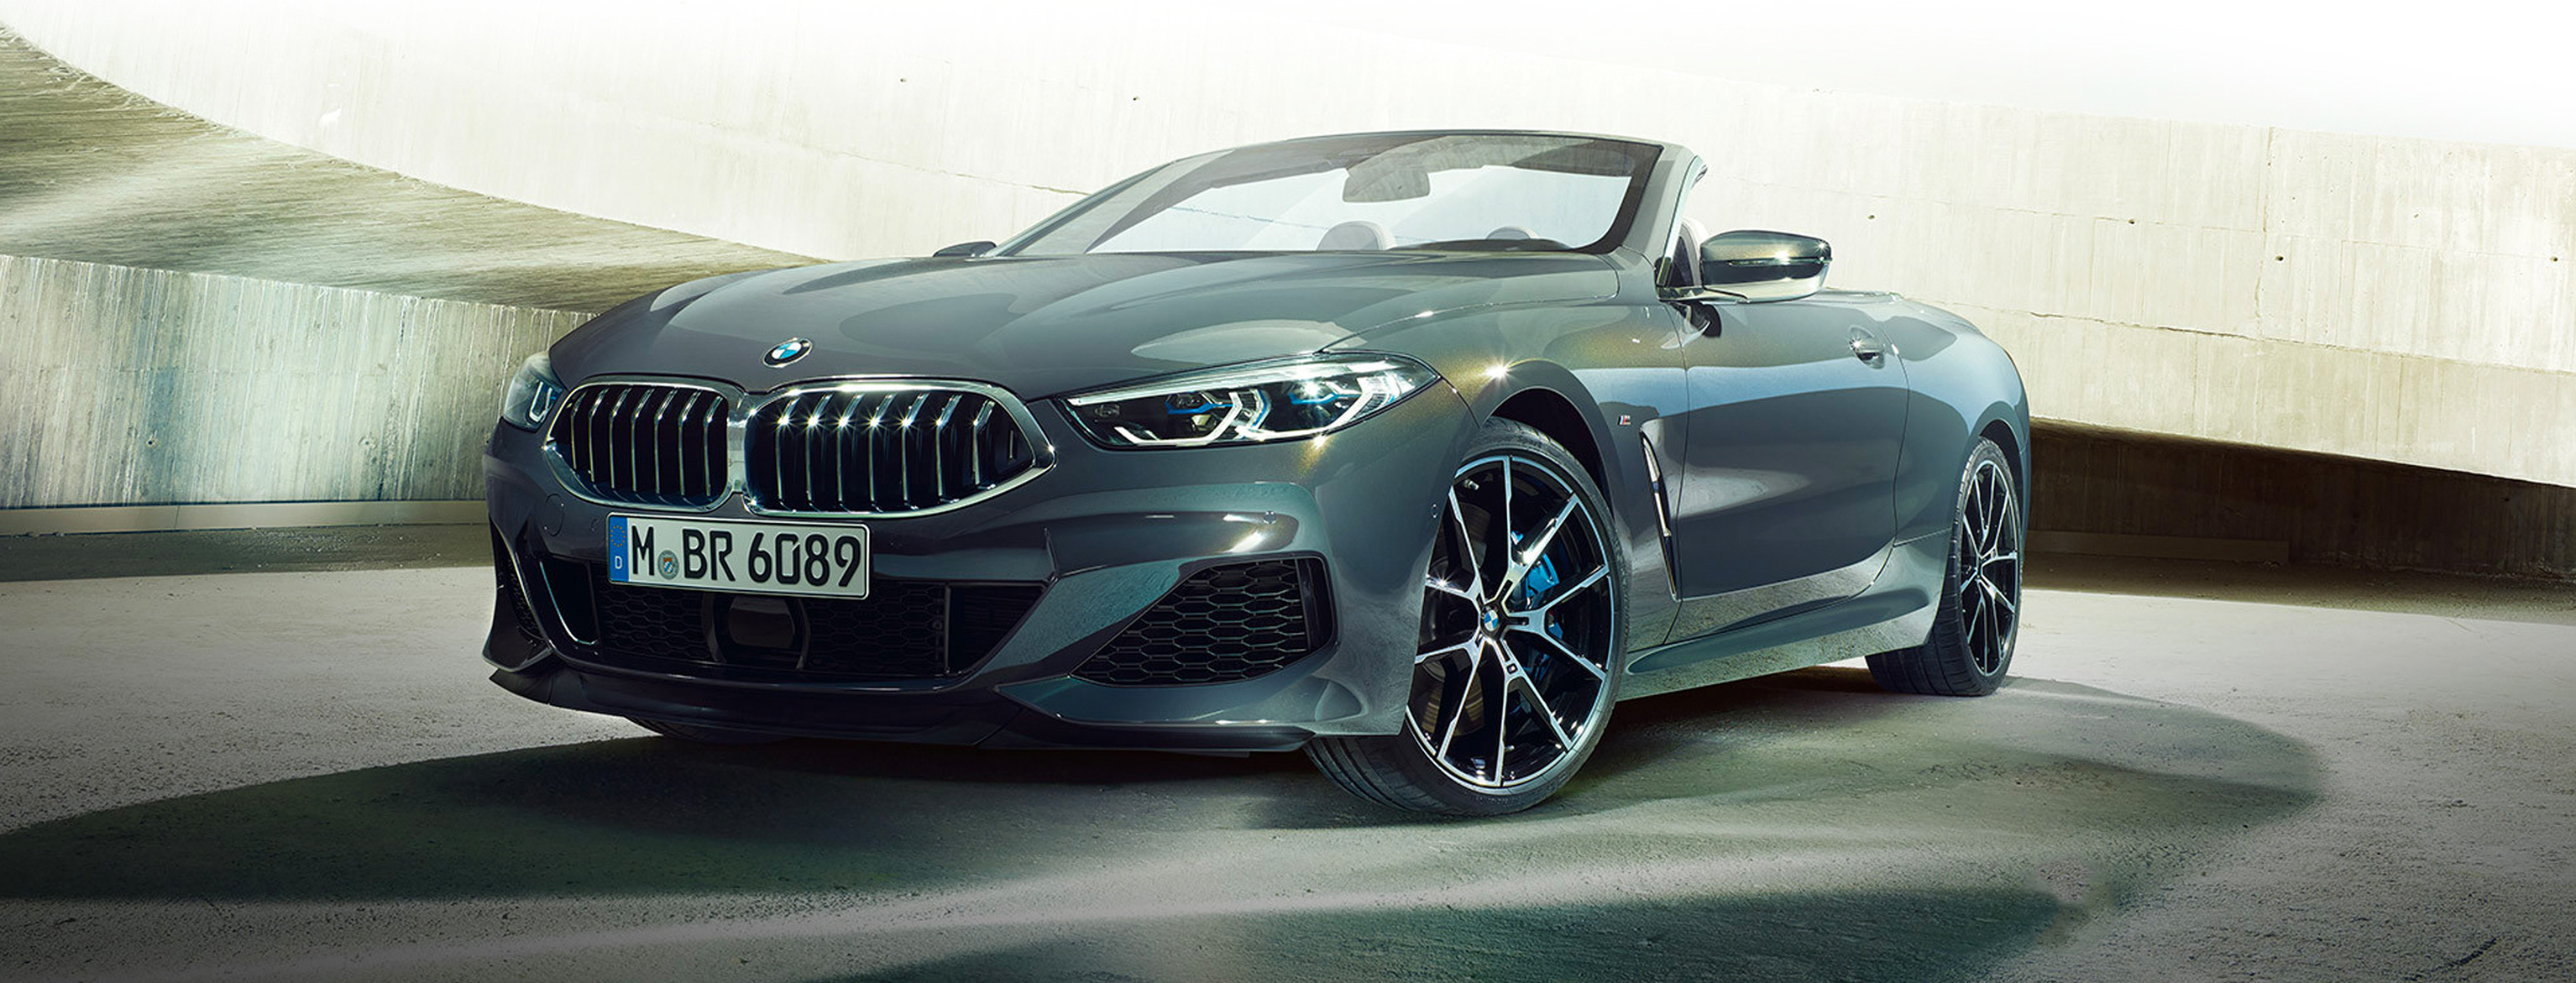 New BMW 8 Series Convertible